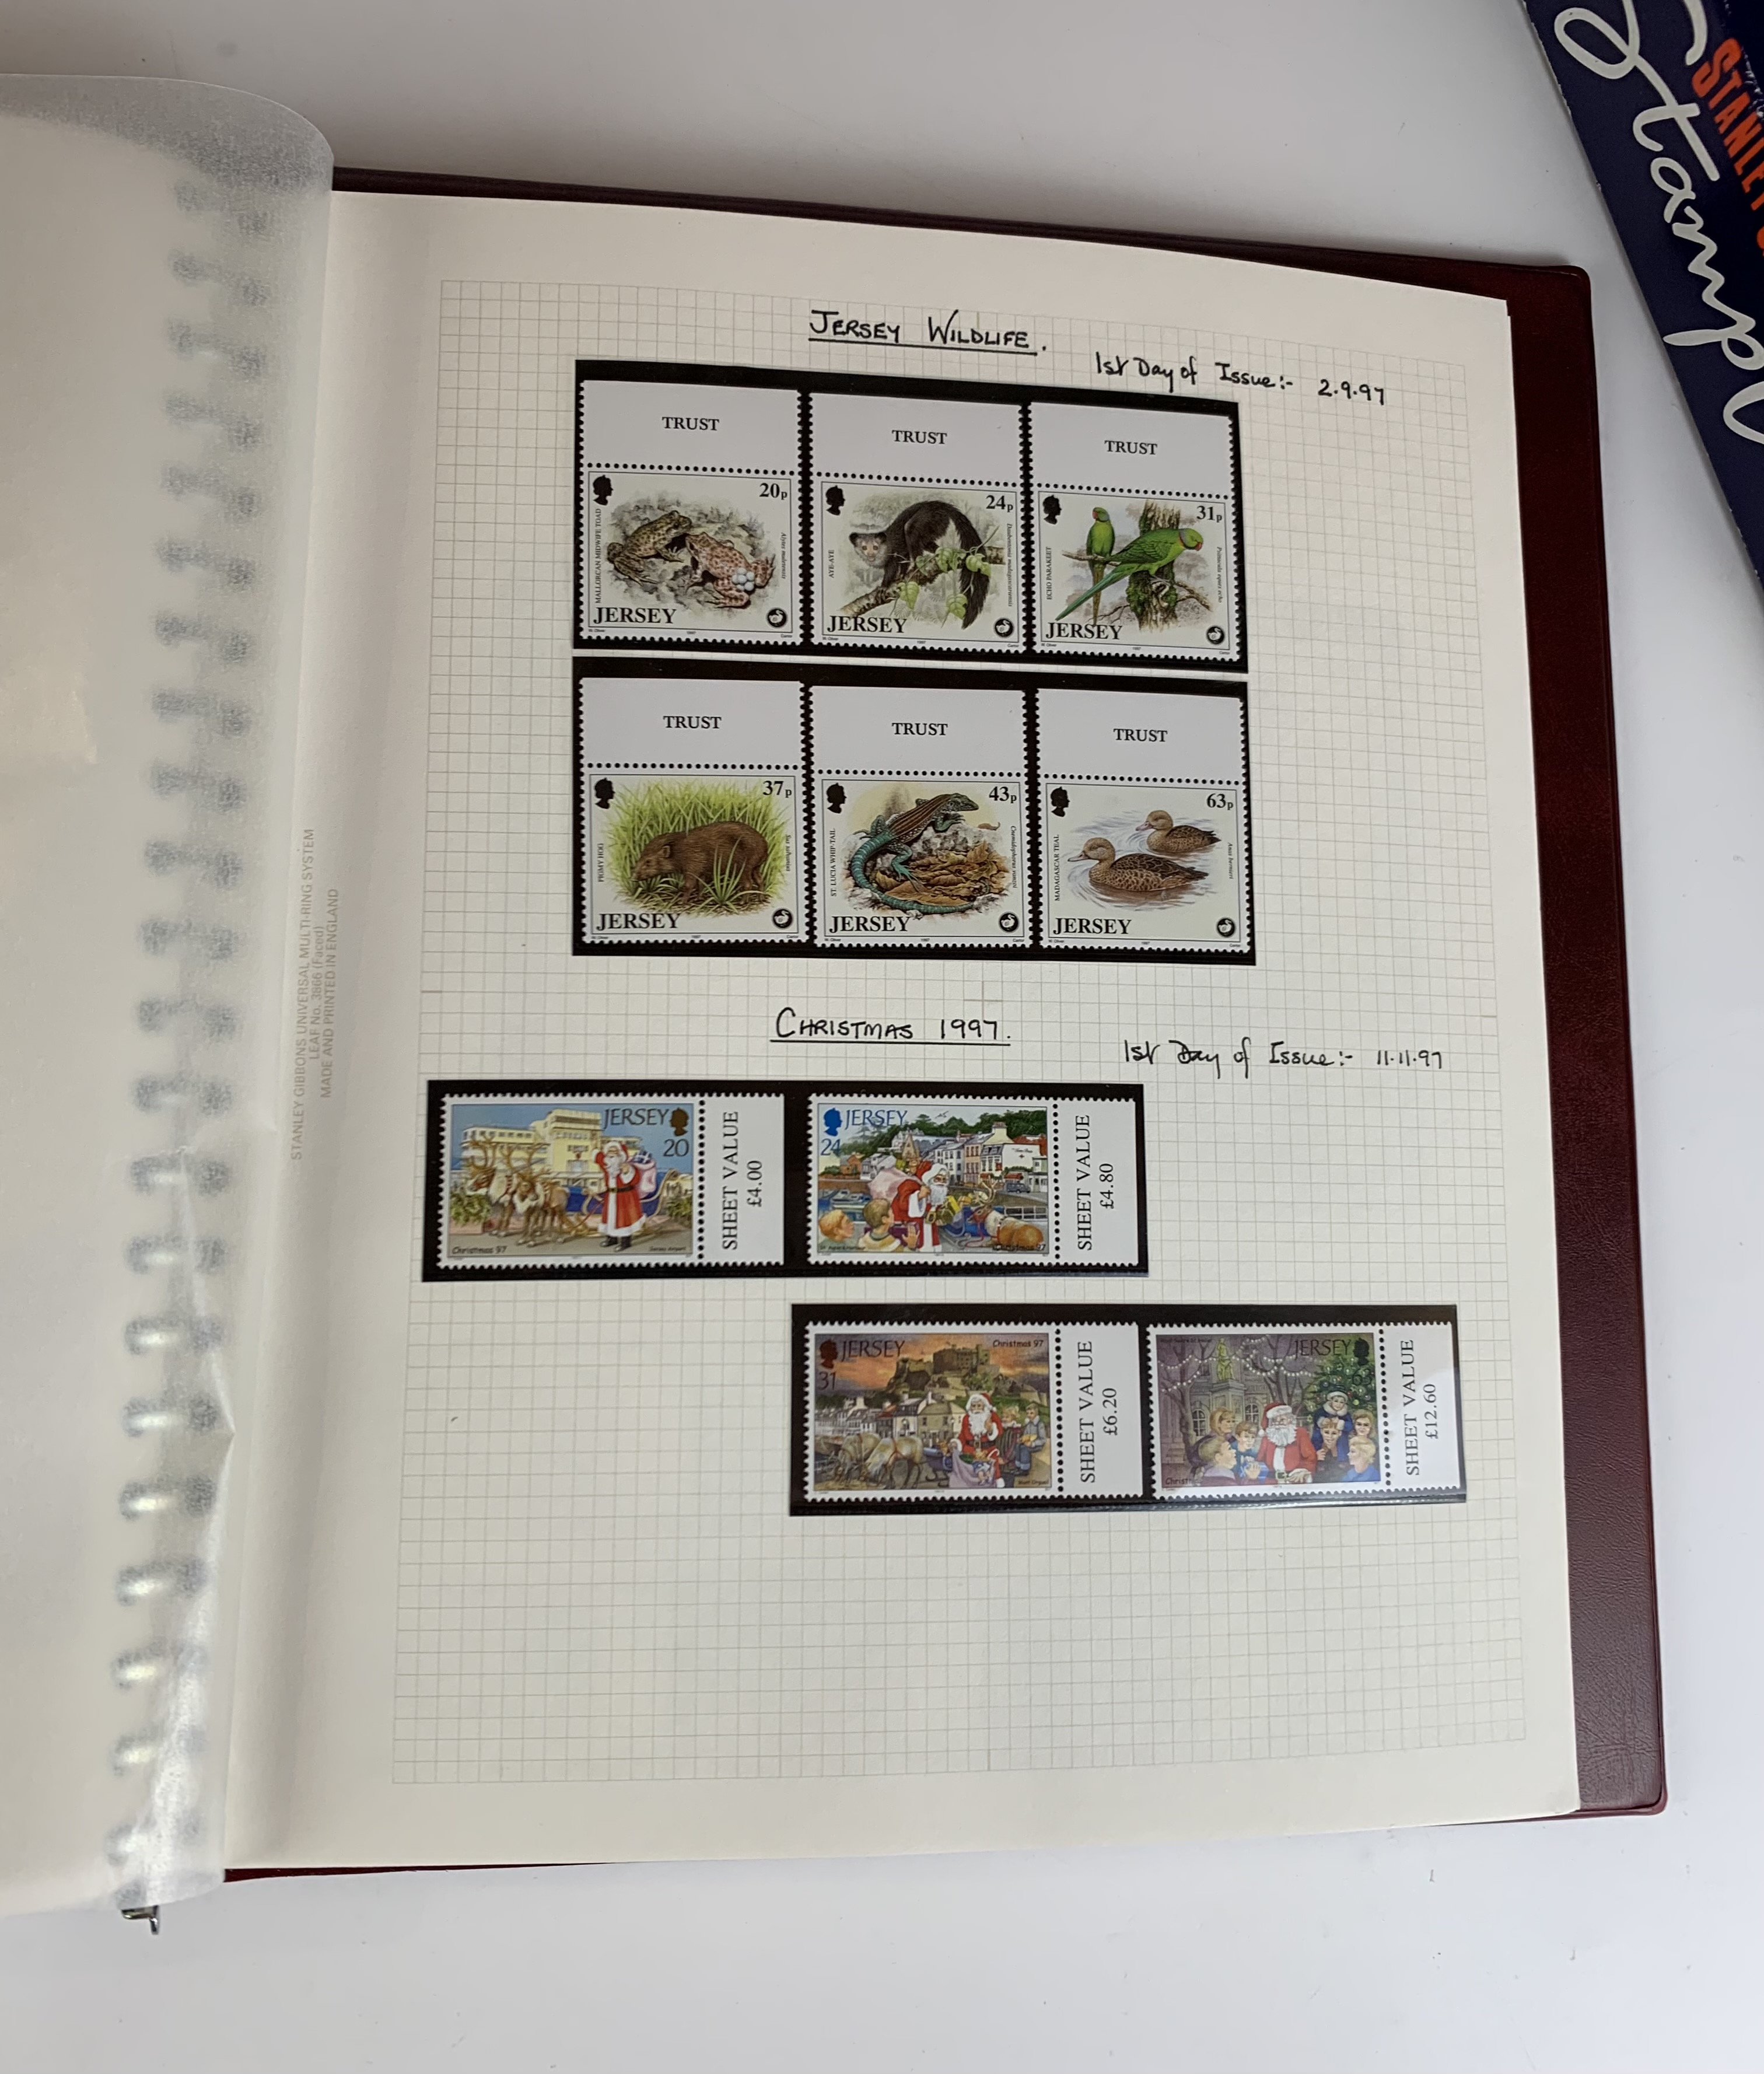 Boxed Stanley Gibbons album of mint UK/Guernsey/Jersey/Isle of Wight stamps and first day covers - Image 3 of 4